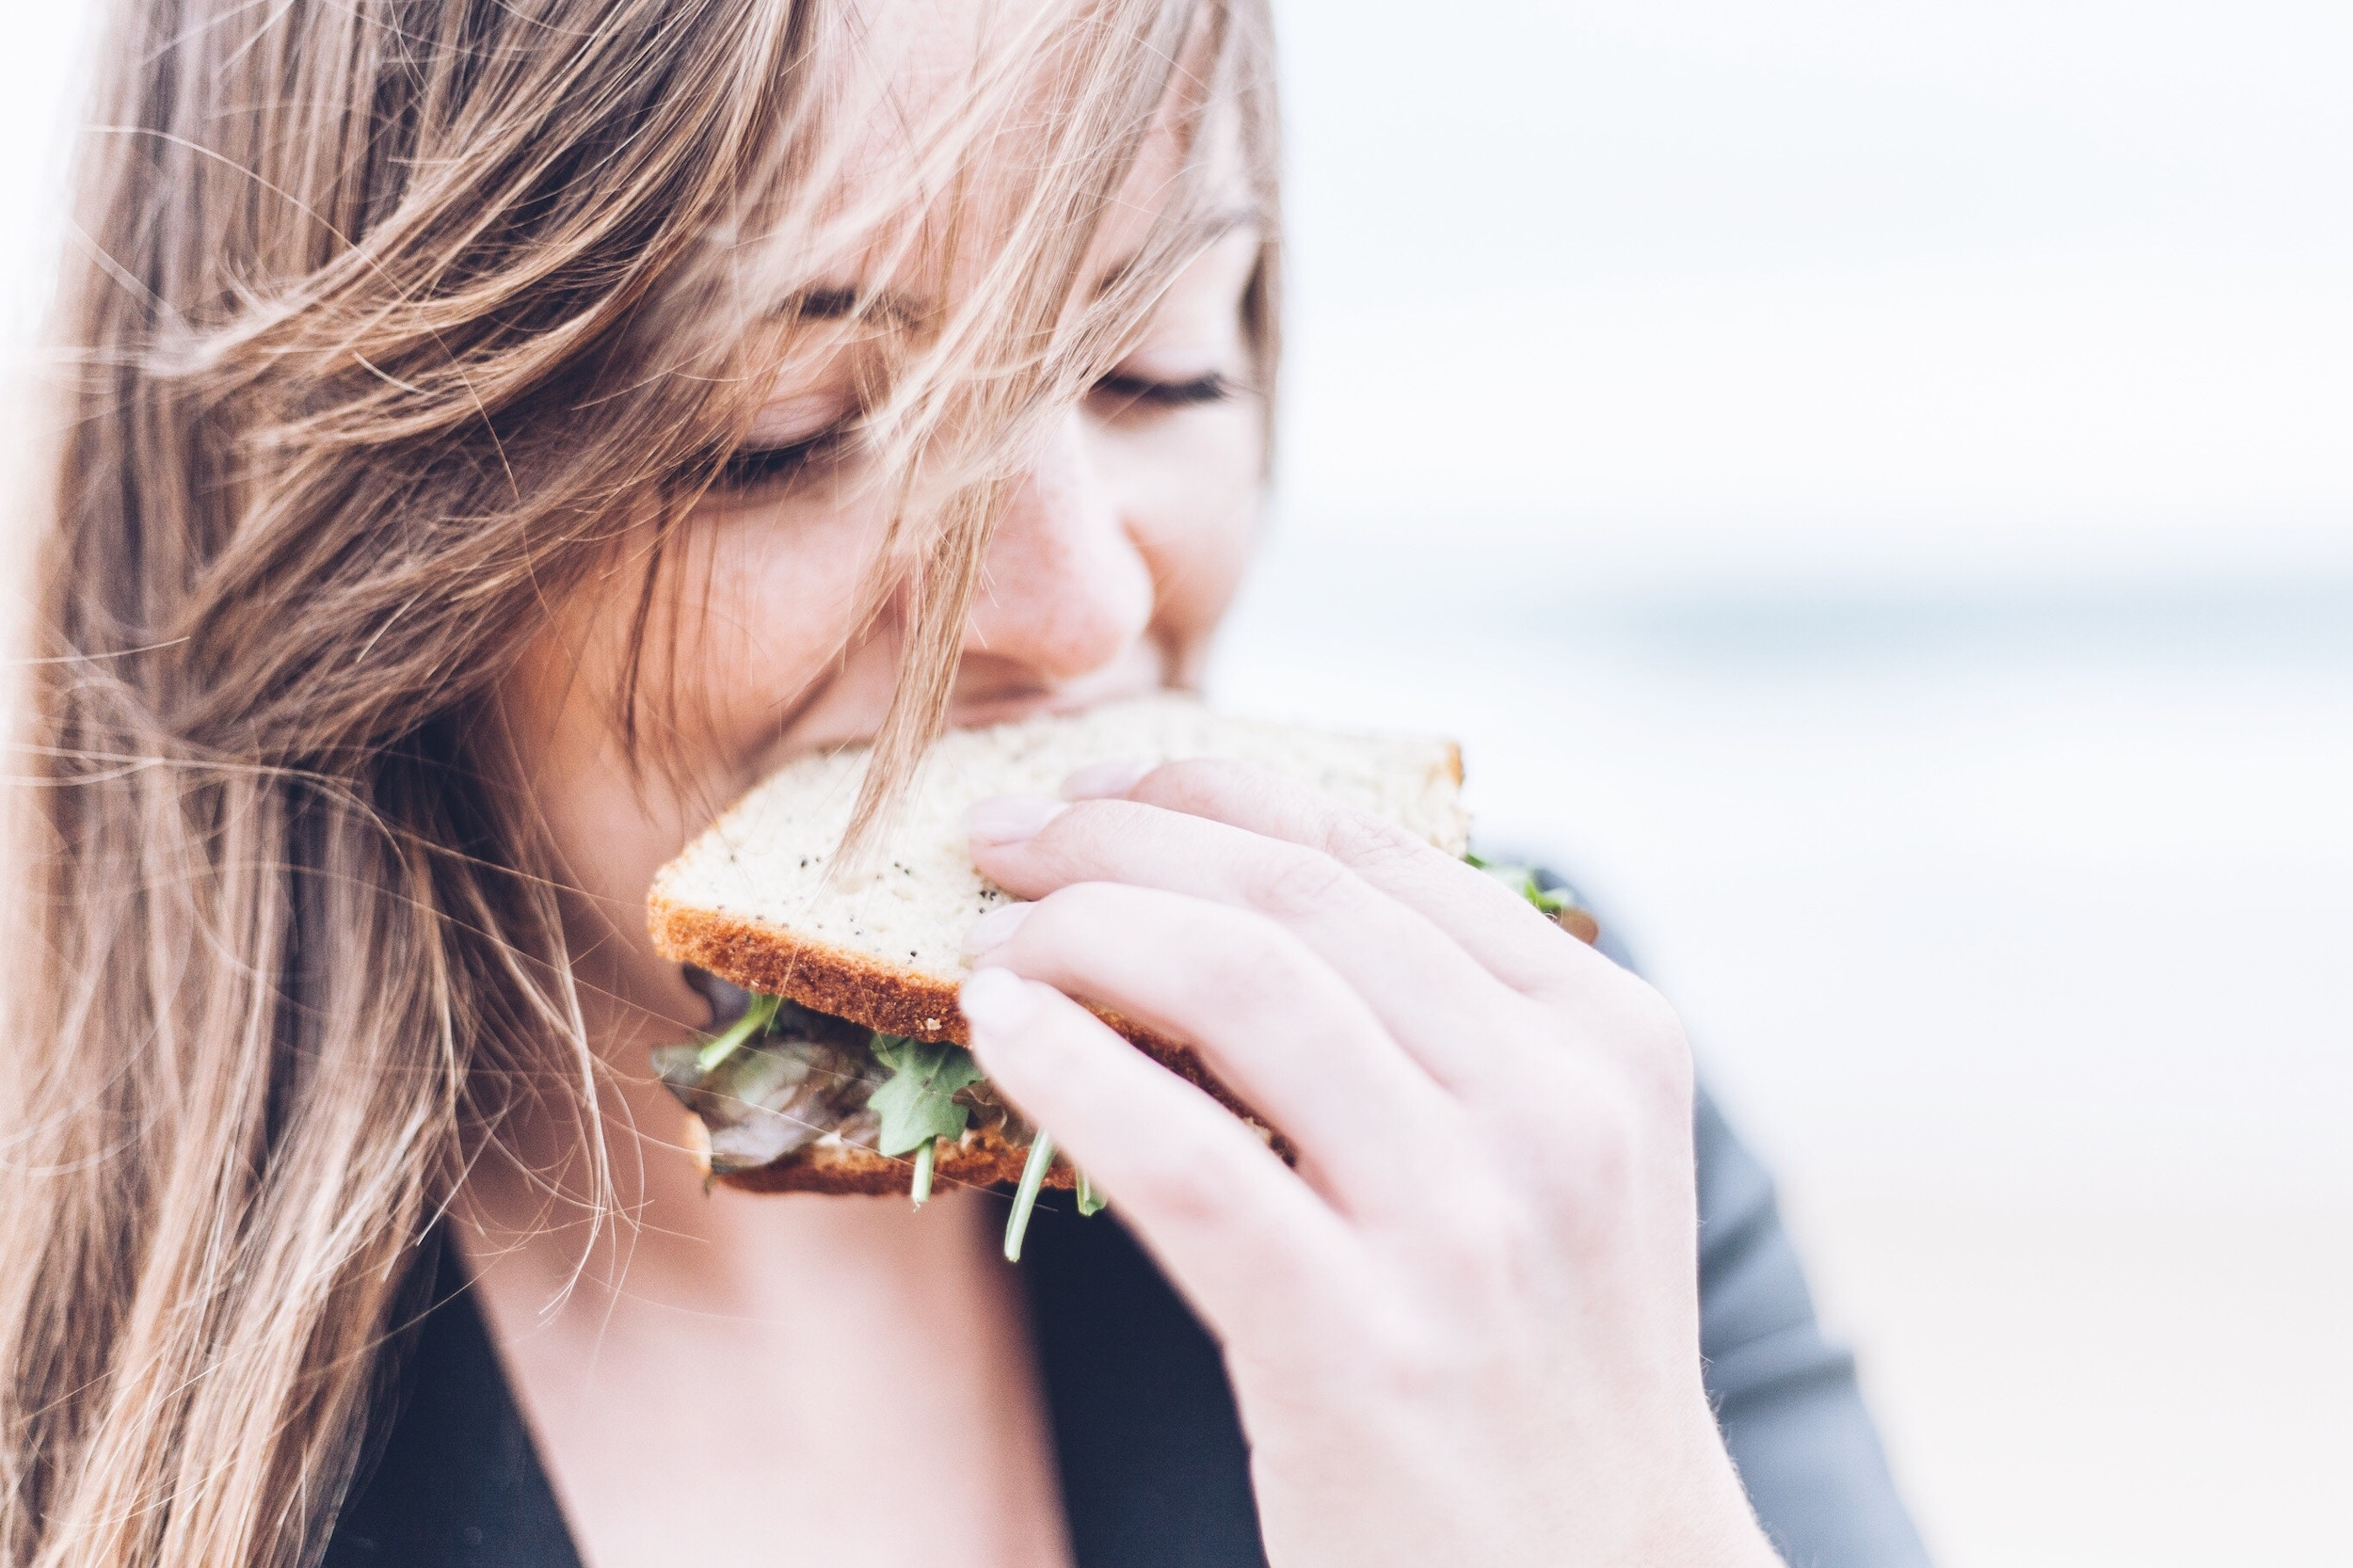 What can I eat? Fast food chains offer healthy options, if you know what to order